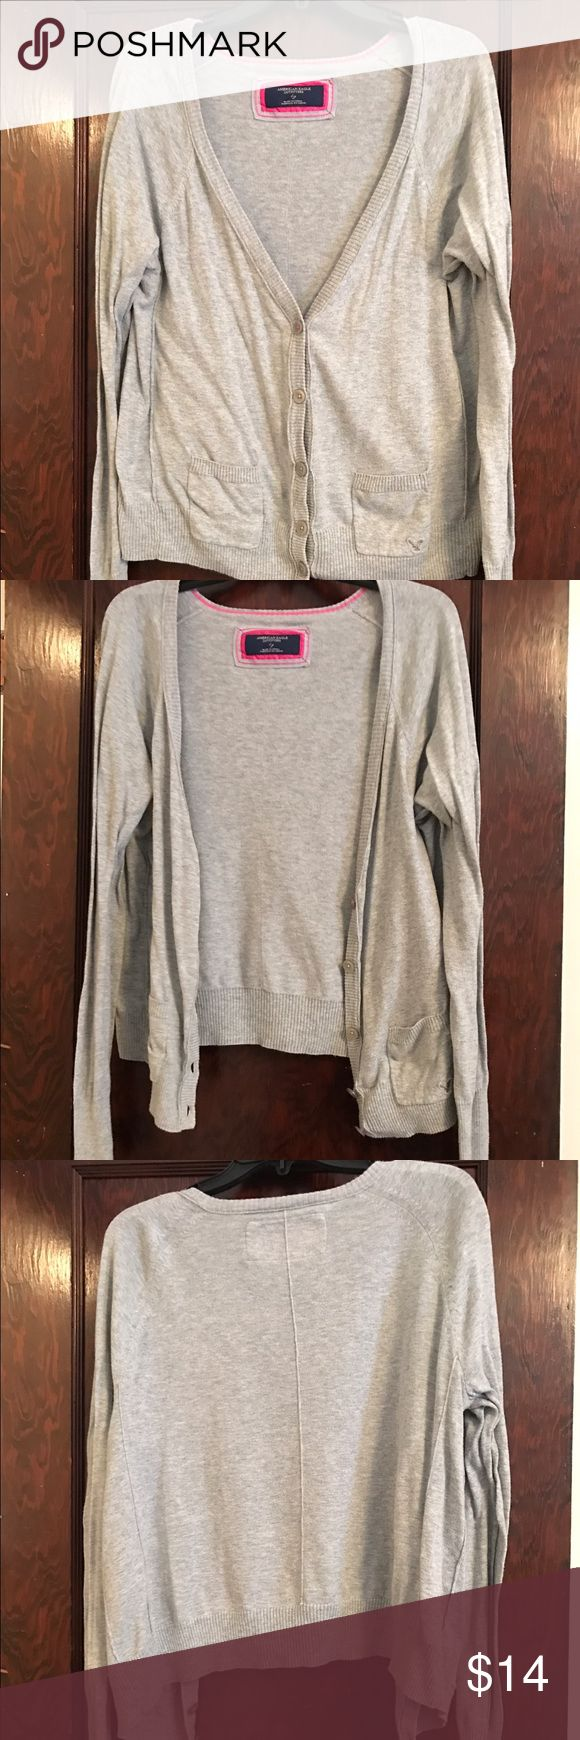 American Eagle sweater! American Eagle sweater perfect to throw over any outfit! American Eagle Outfitters Sweaters